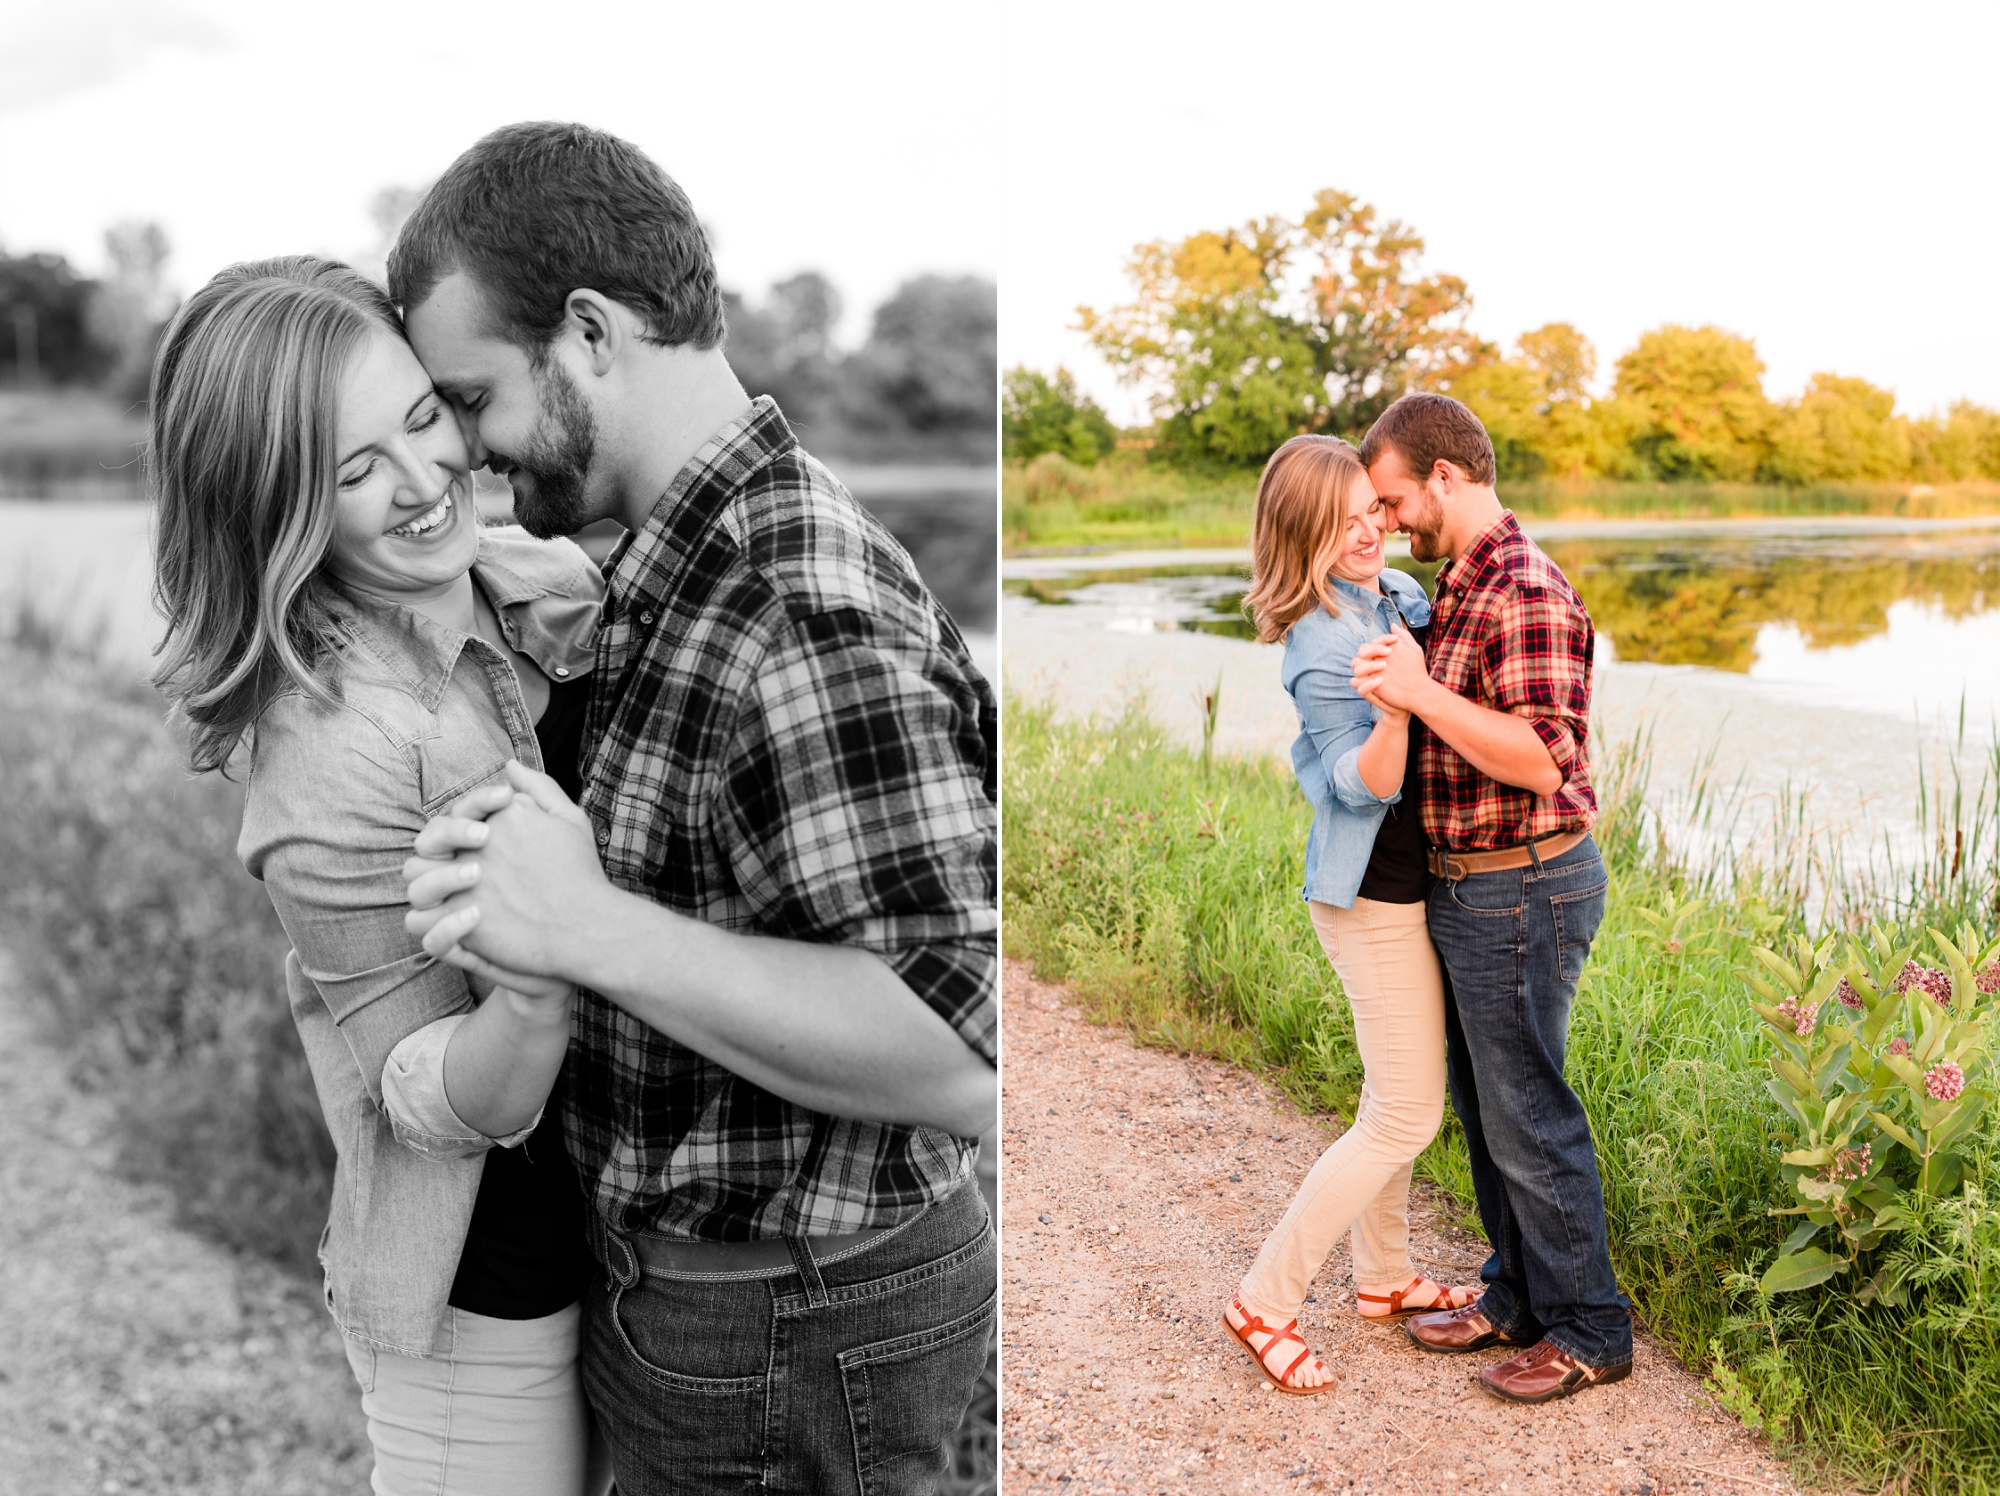 AmberLangerudPhotography_Countryside Engagement Session in Minnesota_3131.jpg